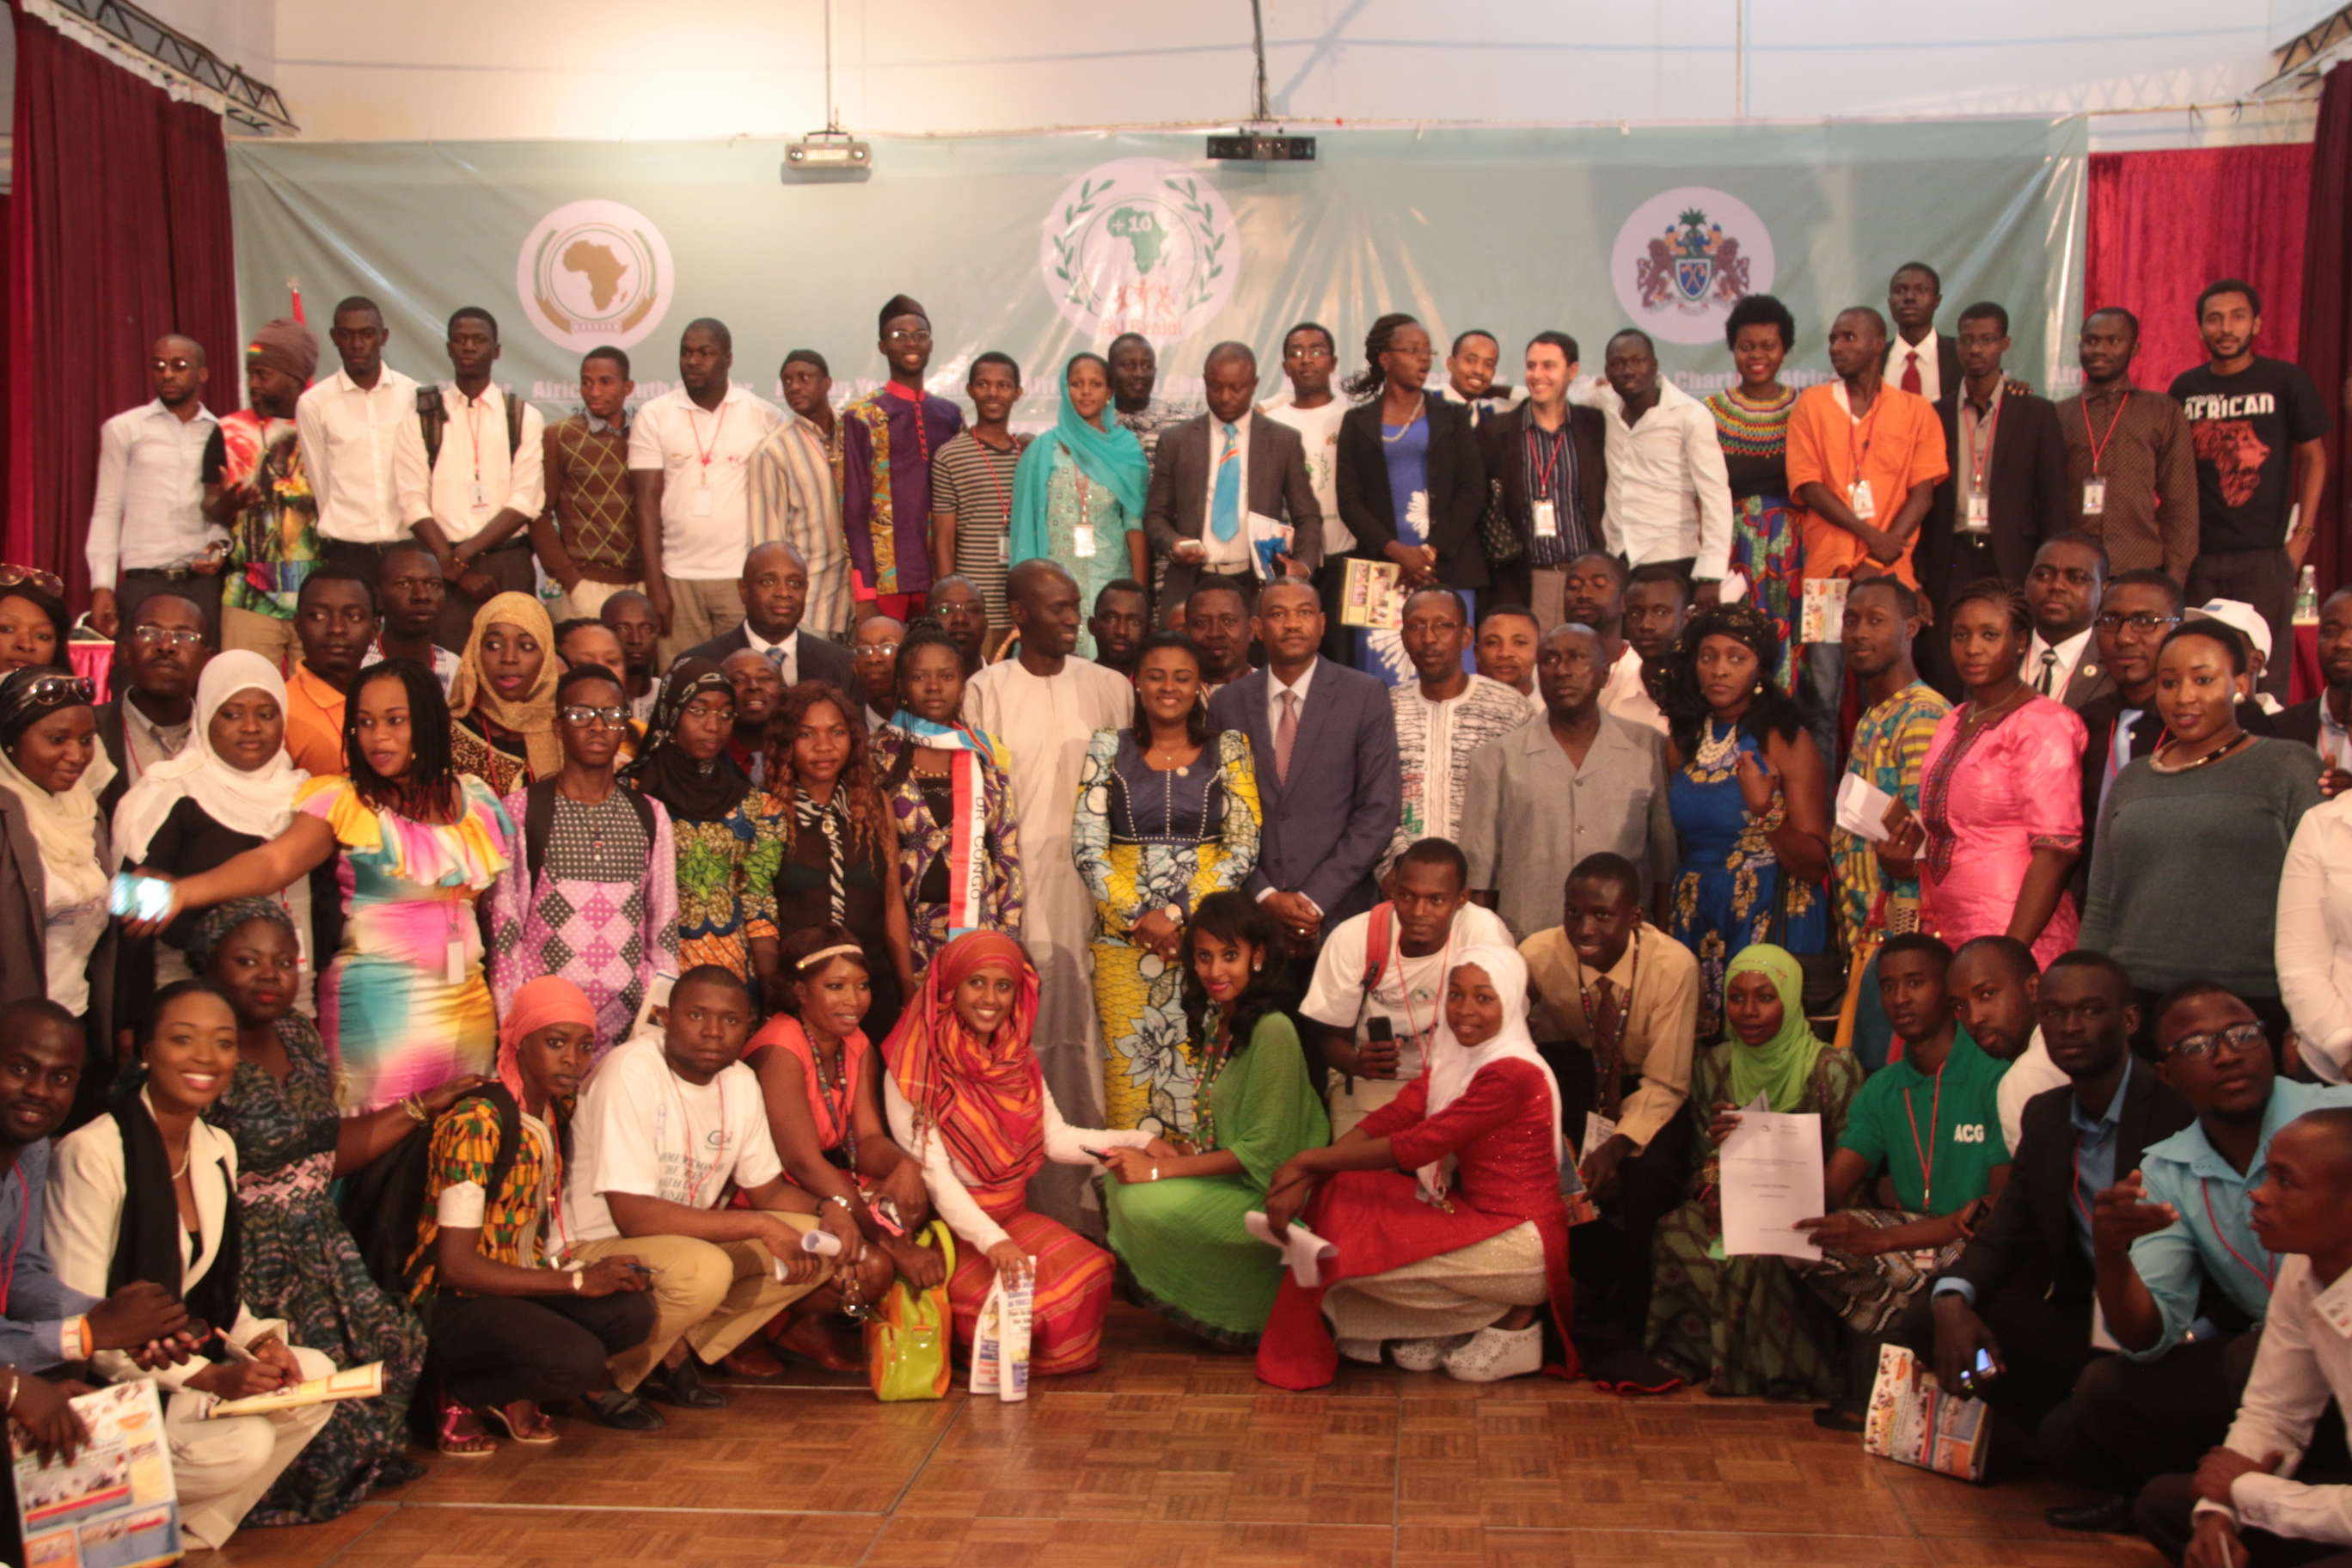 Participants in 10th anniversary of the African Youth Charter